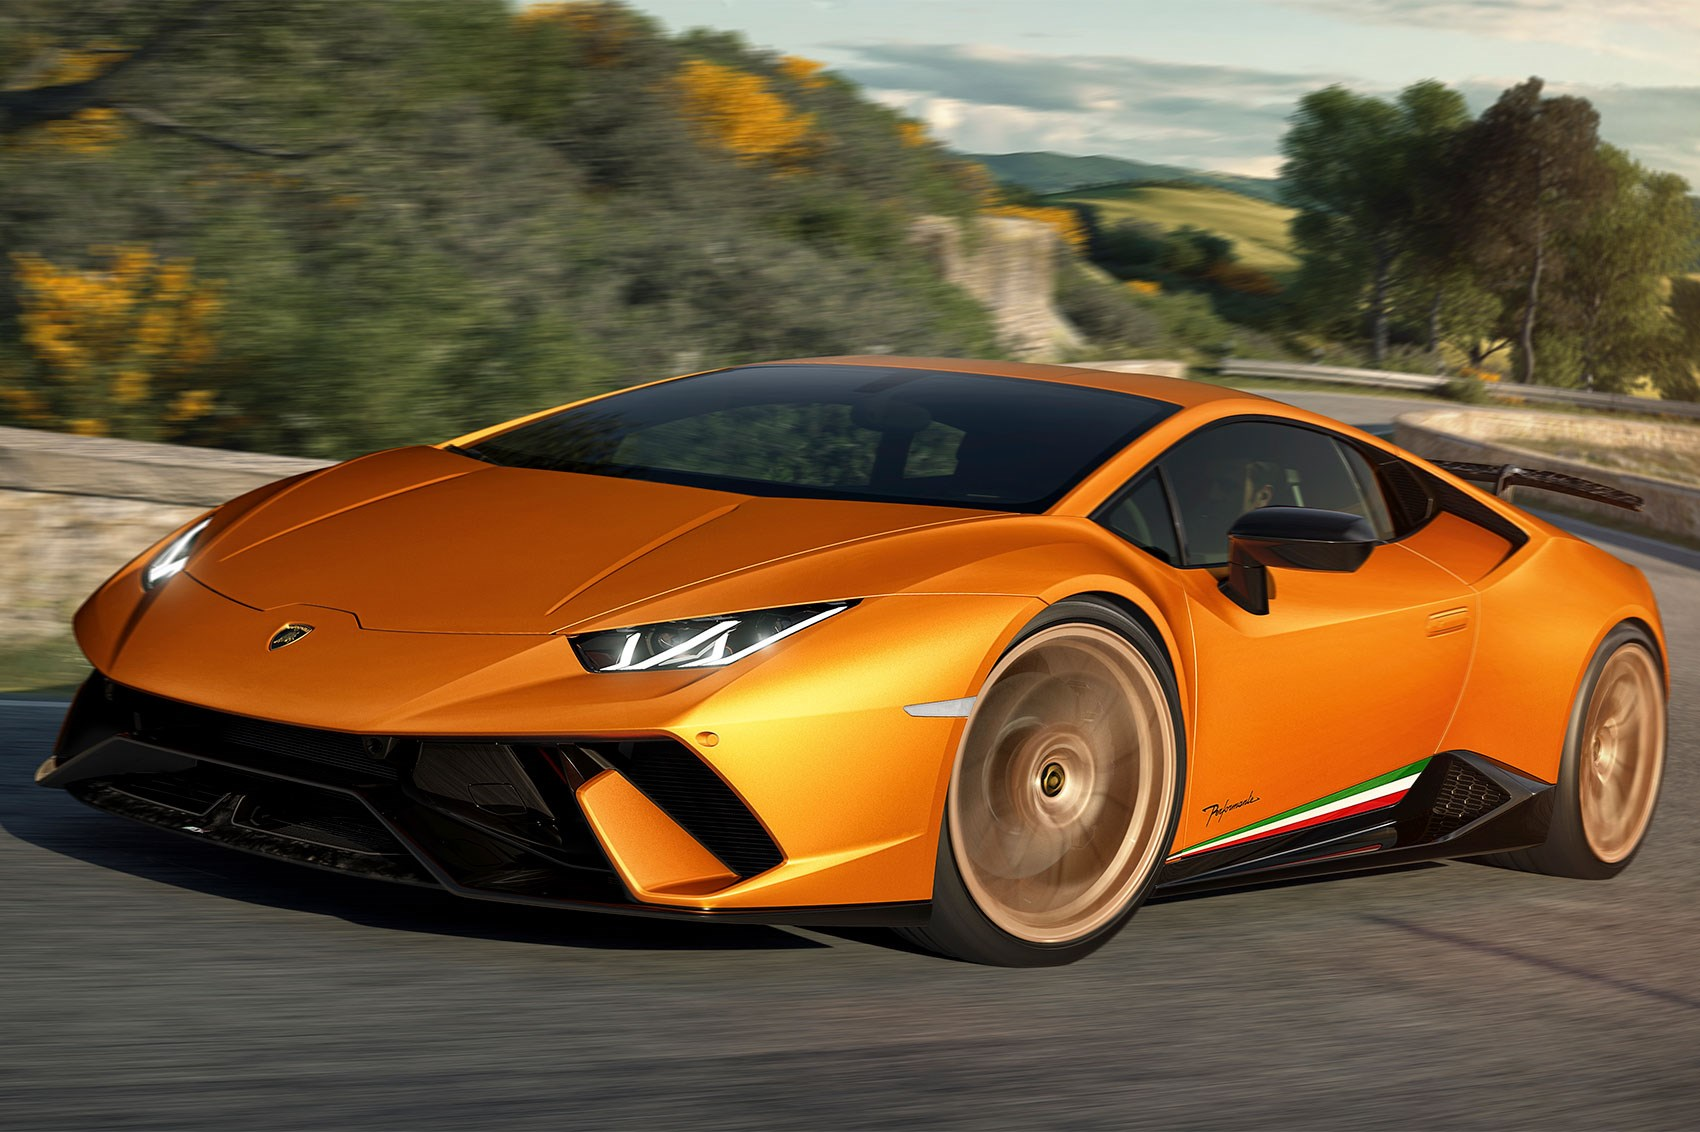 Lamborghini Huracan Performante revealed at Geneva Motor Show